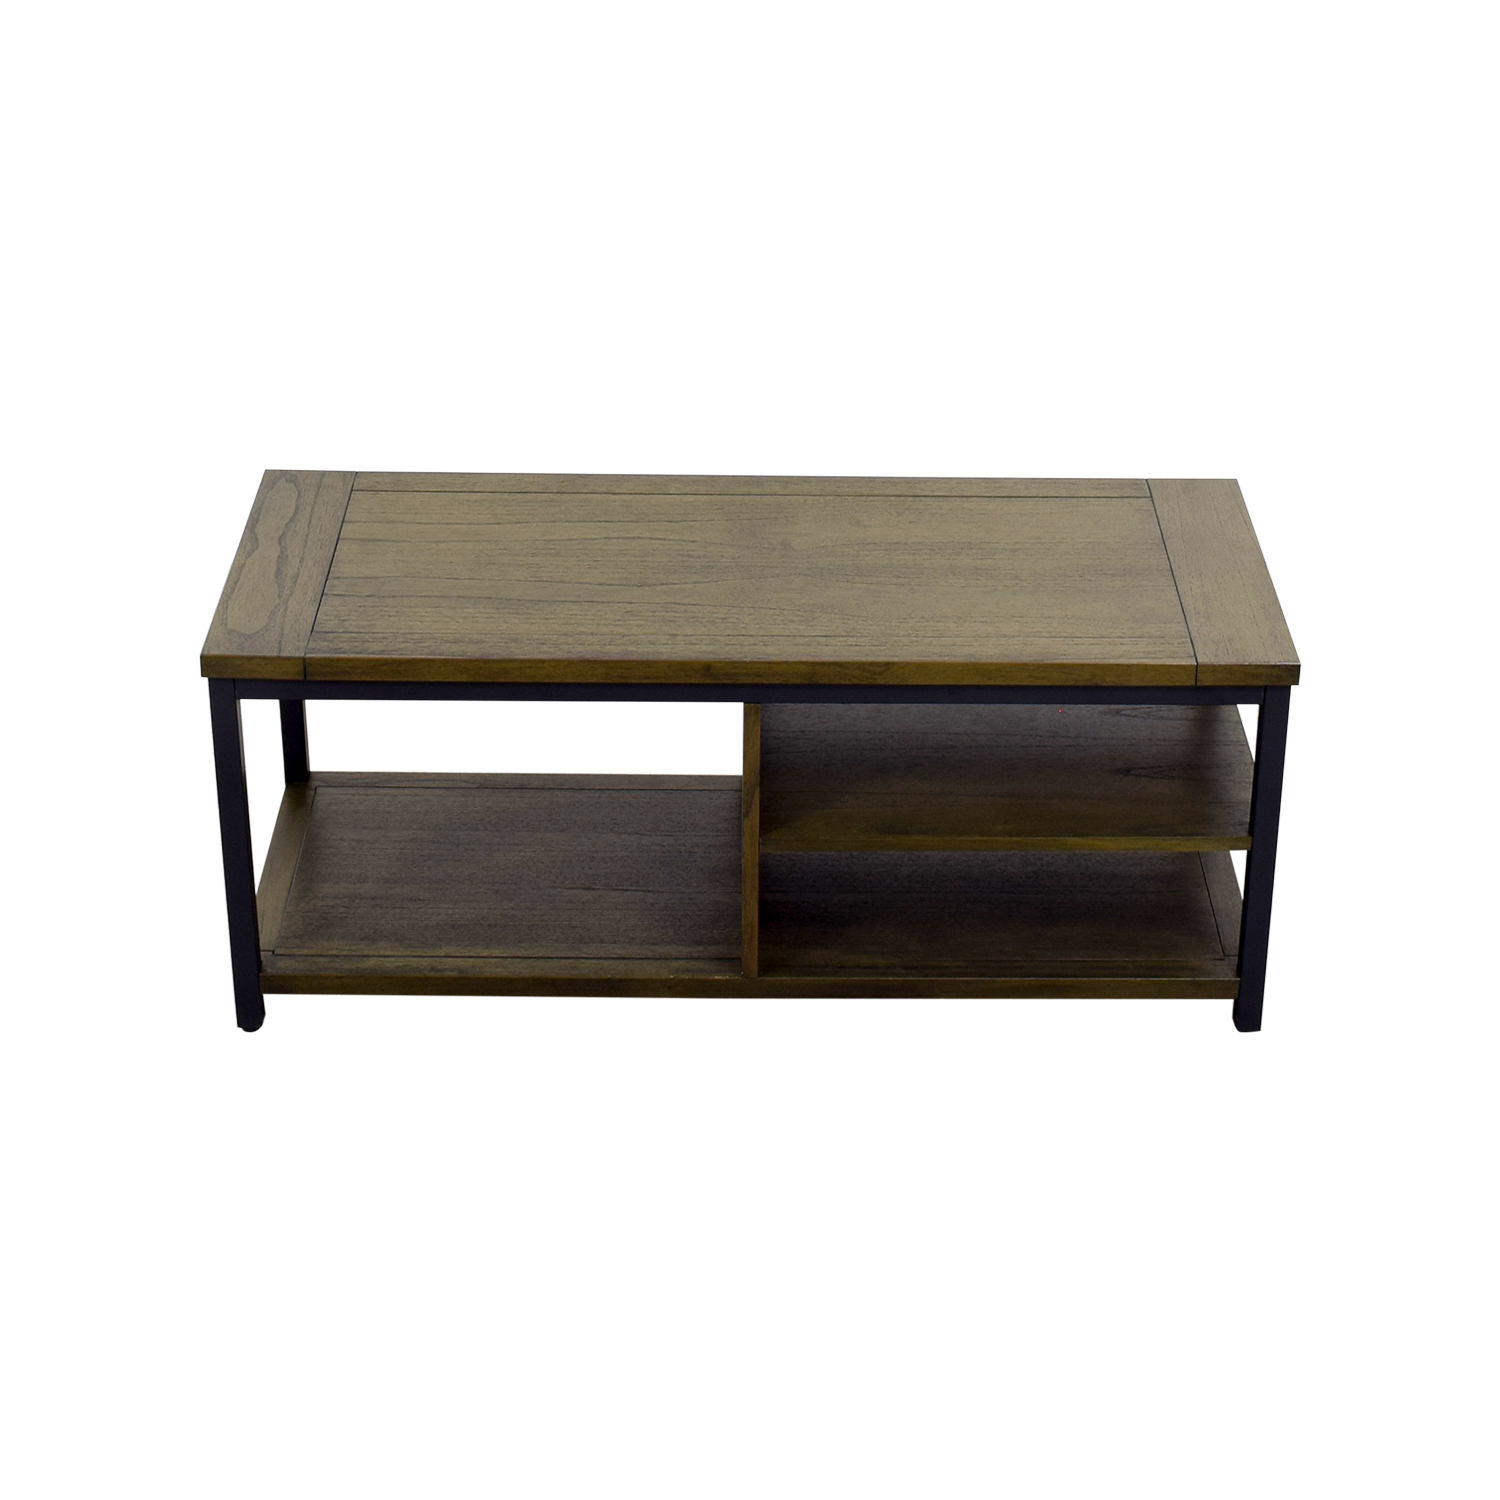 Crate and Barrel Crate and Barrel Entertainment Console Green